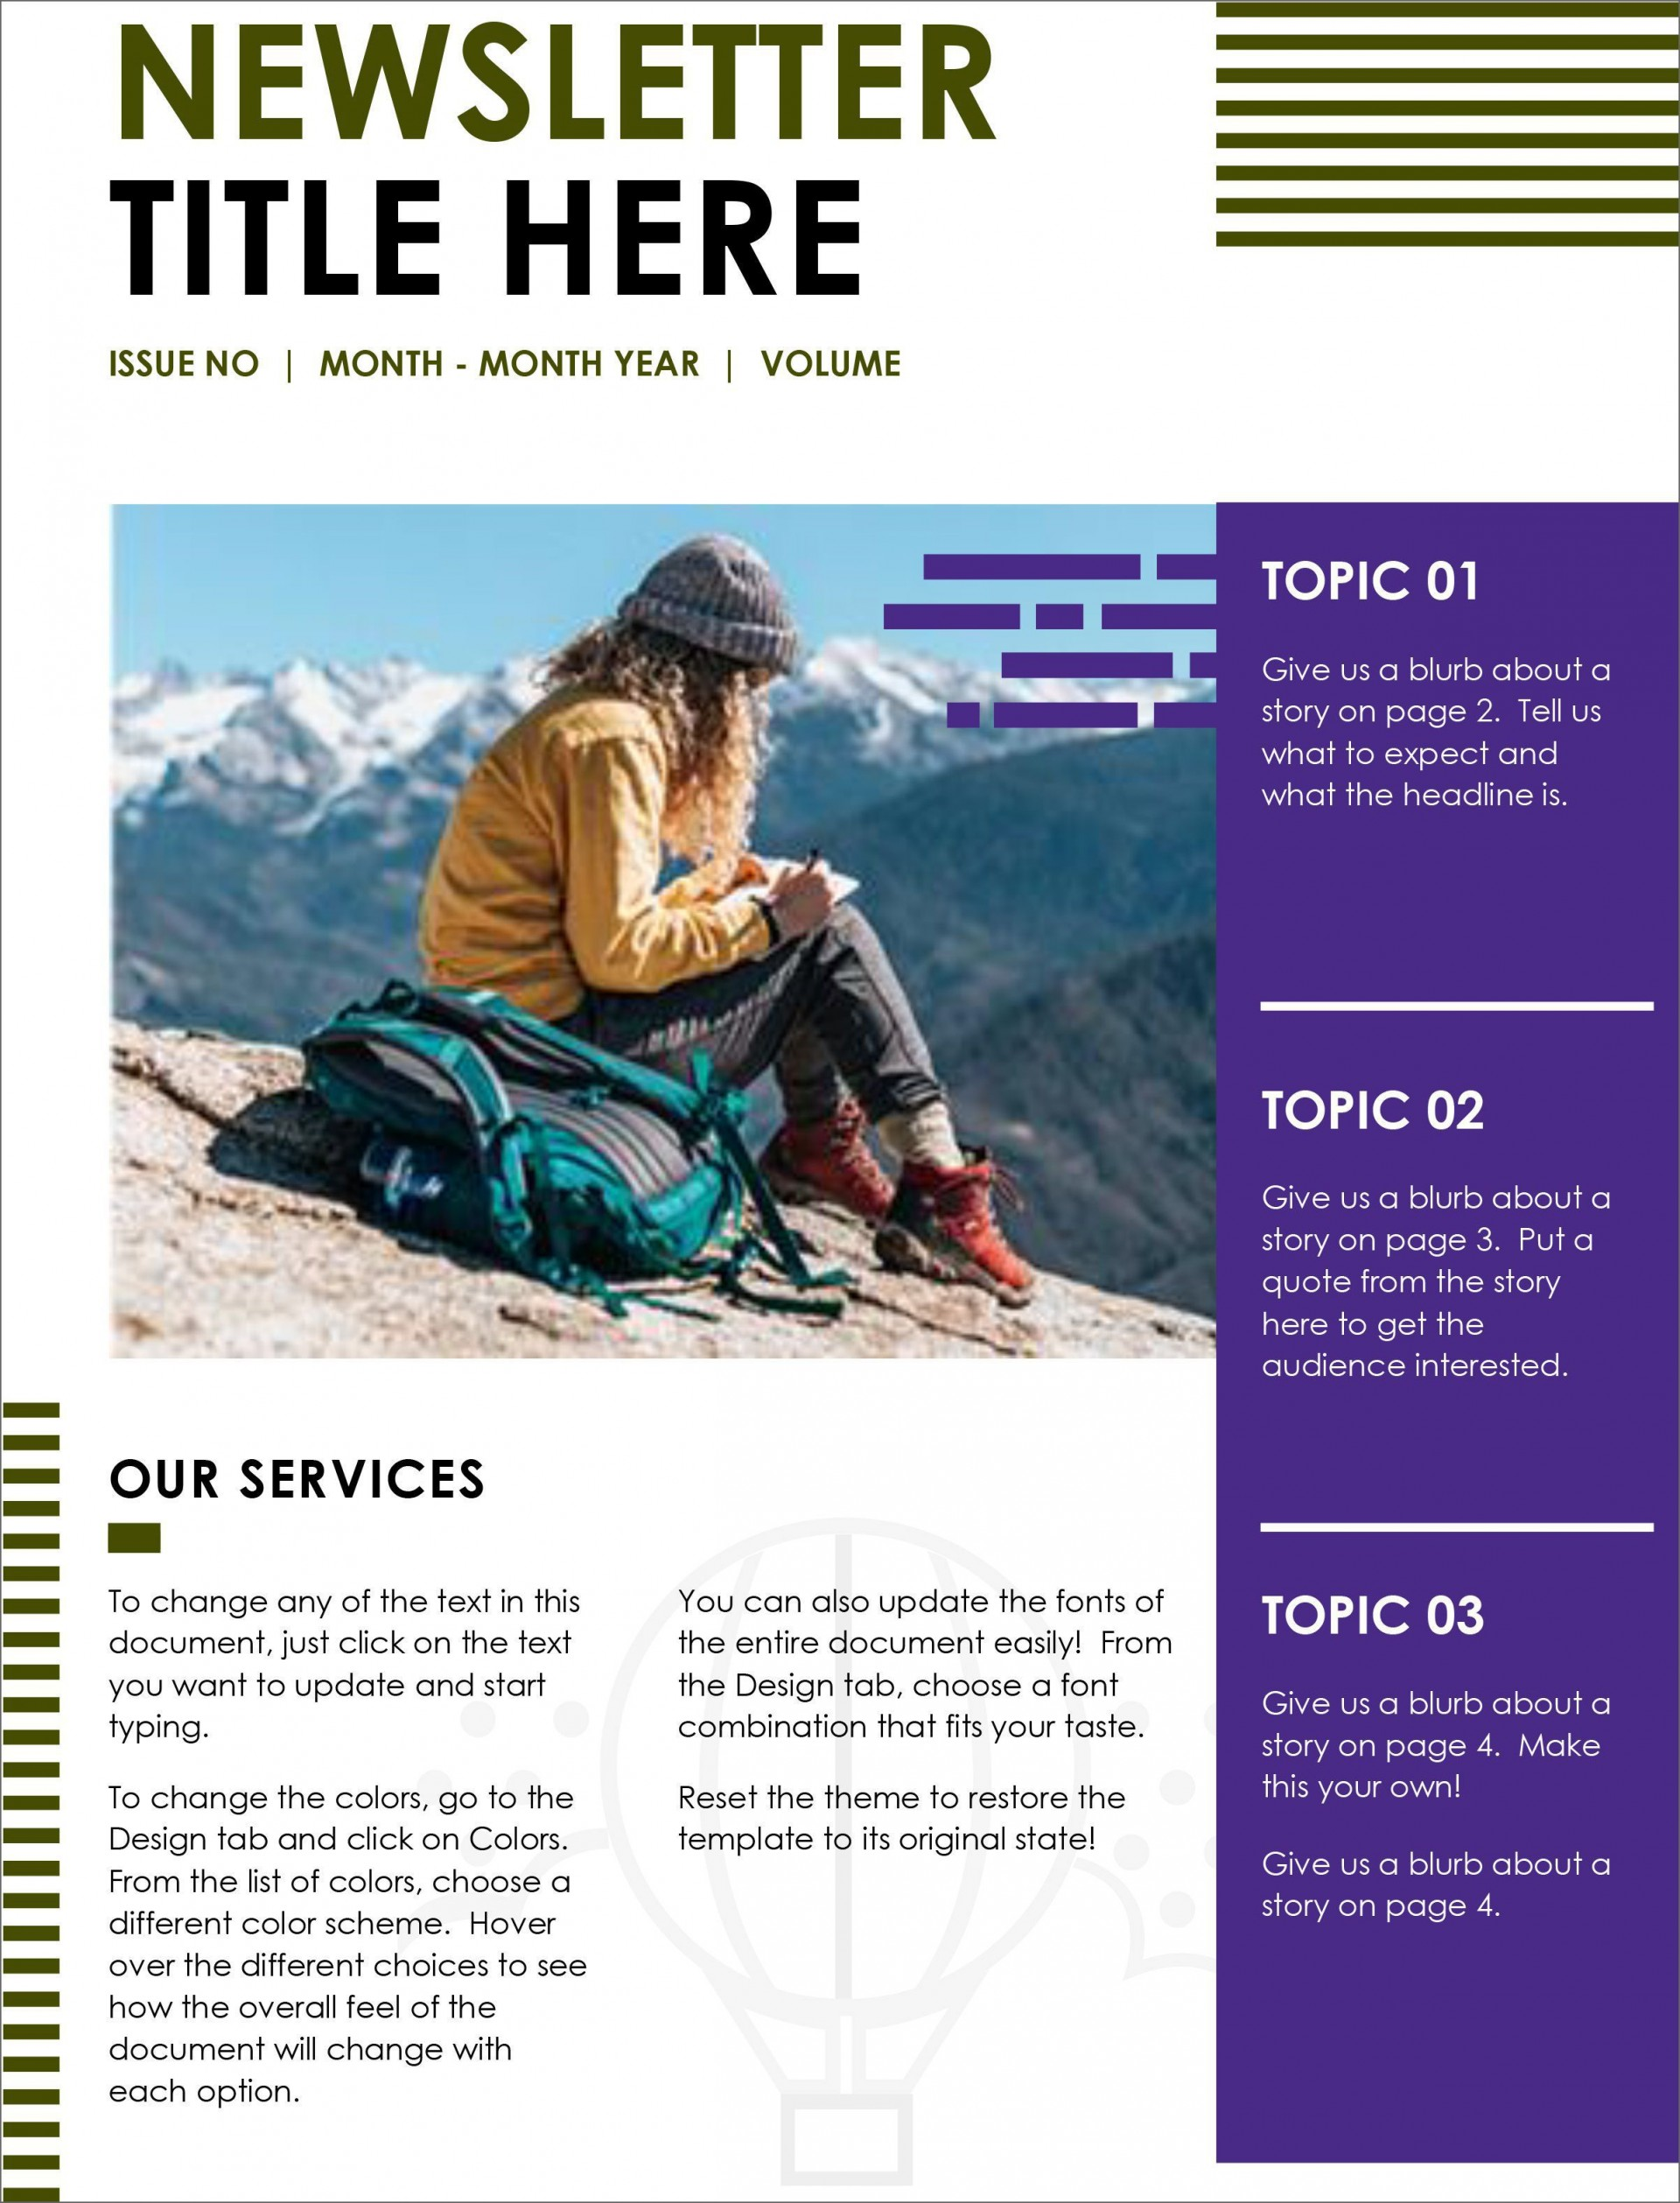 007 Staggering Free Newsletter Template For Word 2010 Idea 1920